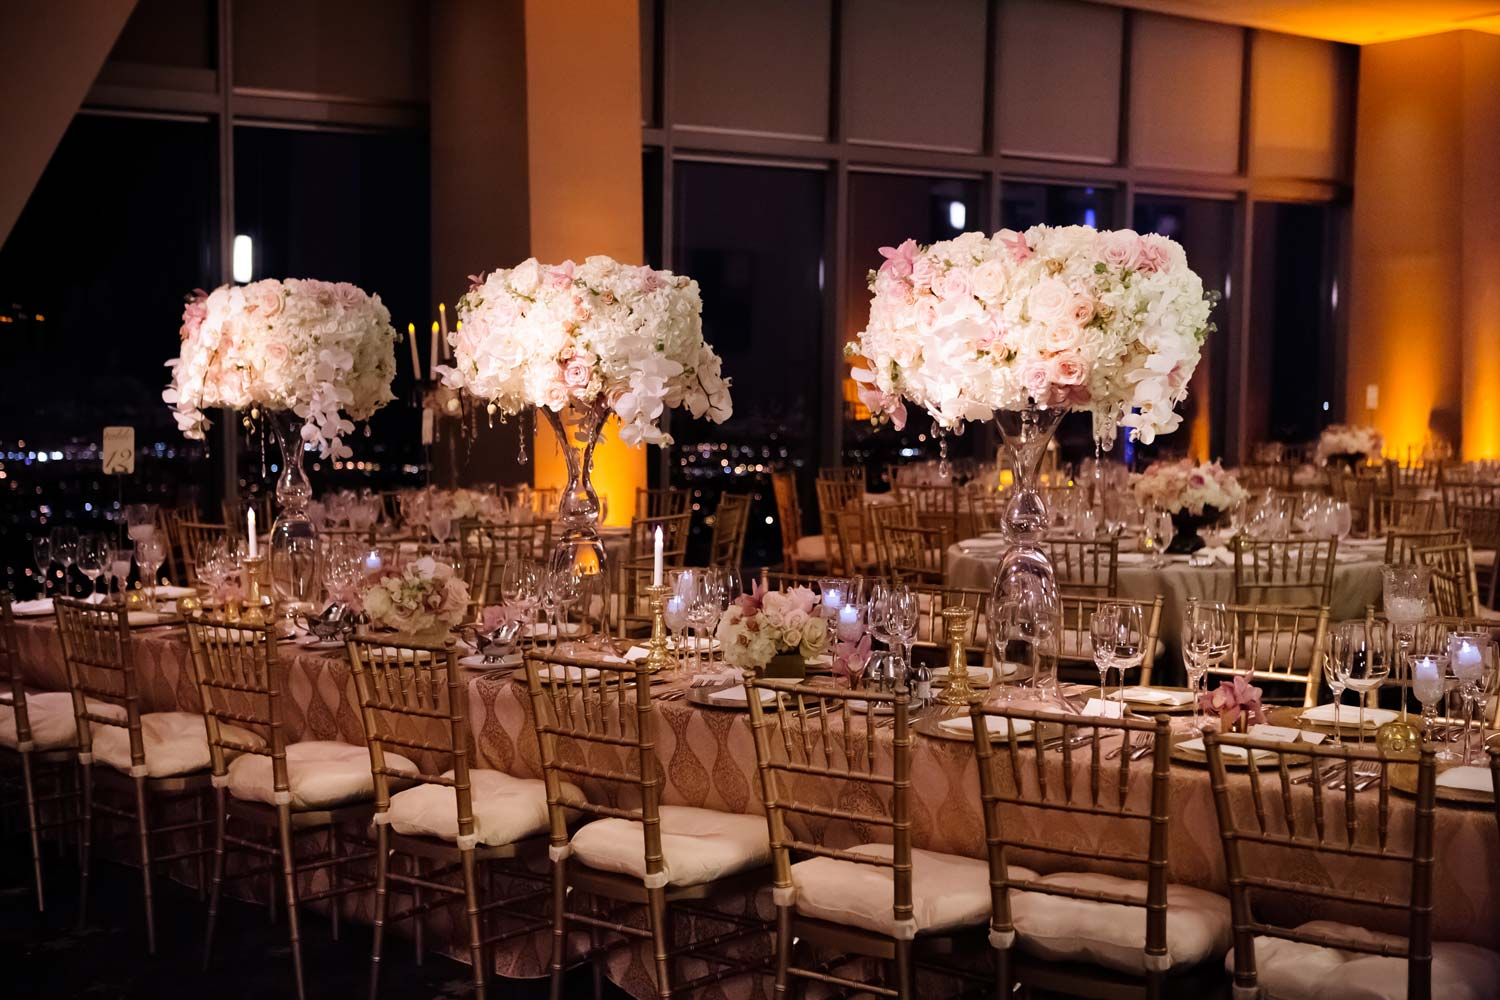 a dimly lit wedding venue with beautiful long tables and large flower centrepieces